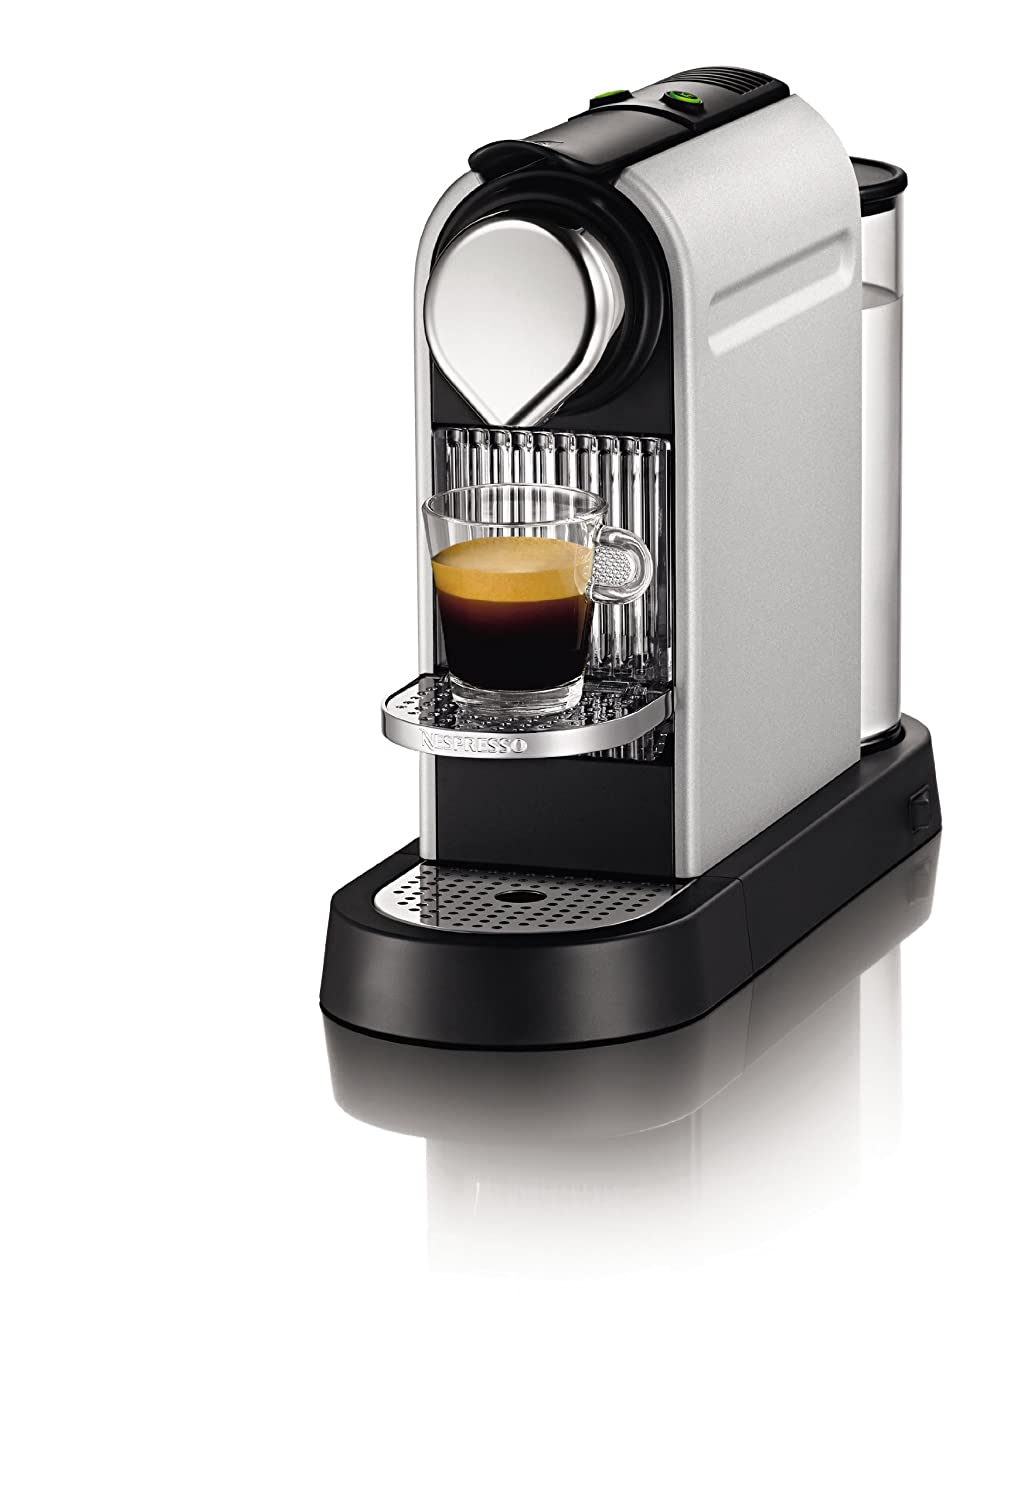 Coffee maker krups nespresso citiz xn7002p4 espresso coffee machine titanium ebay - Machine a cafe krups nespresso ...